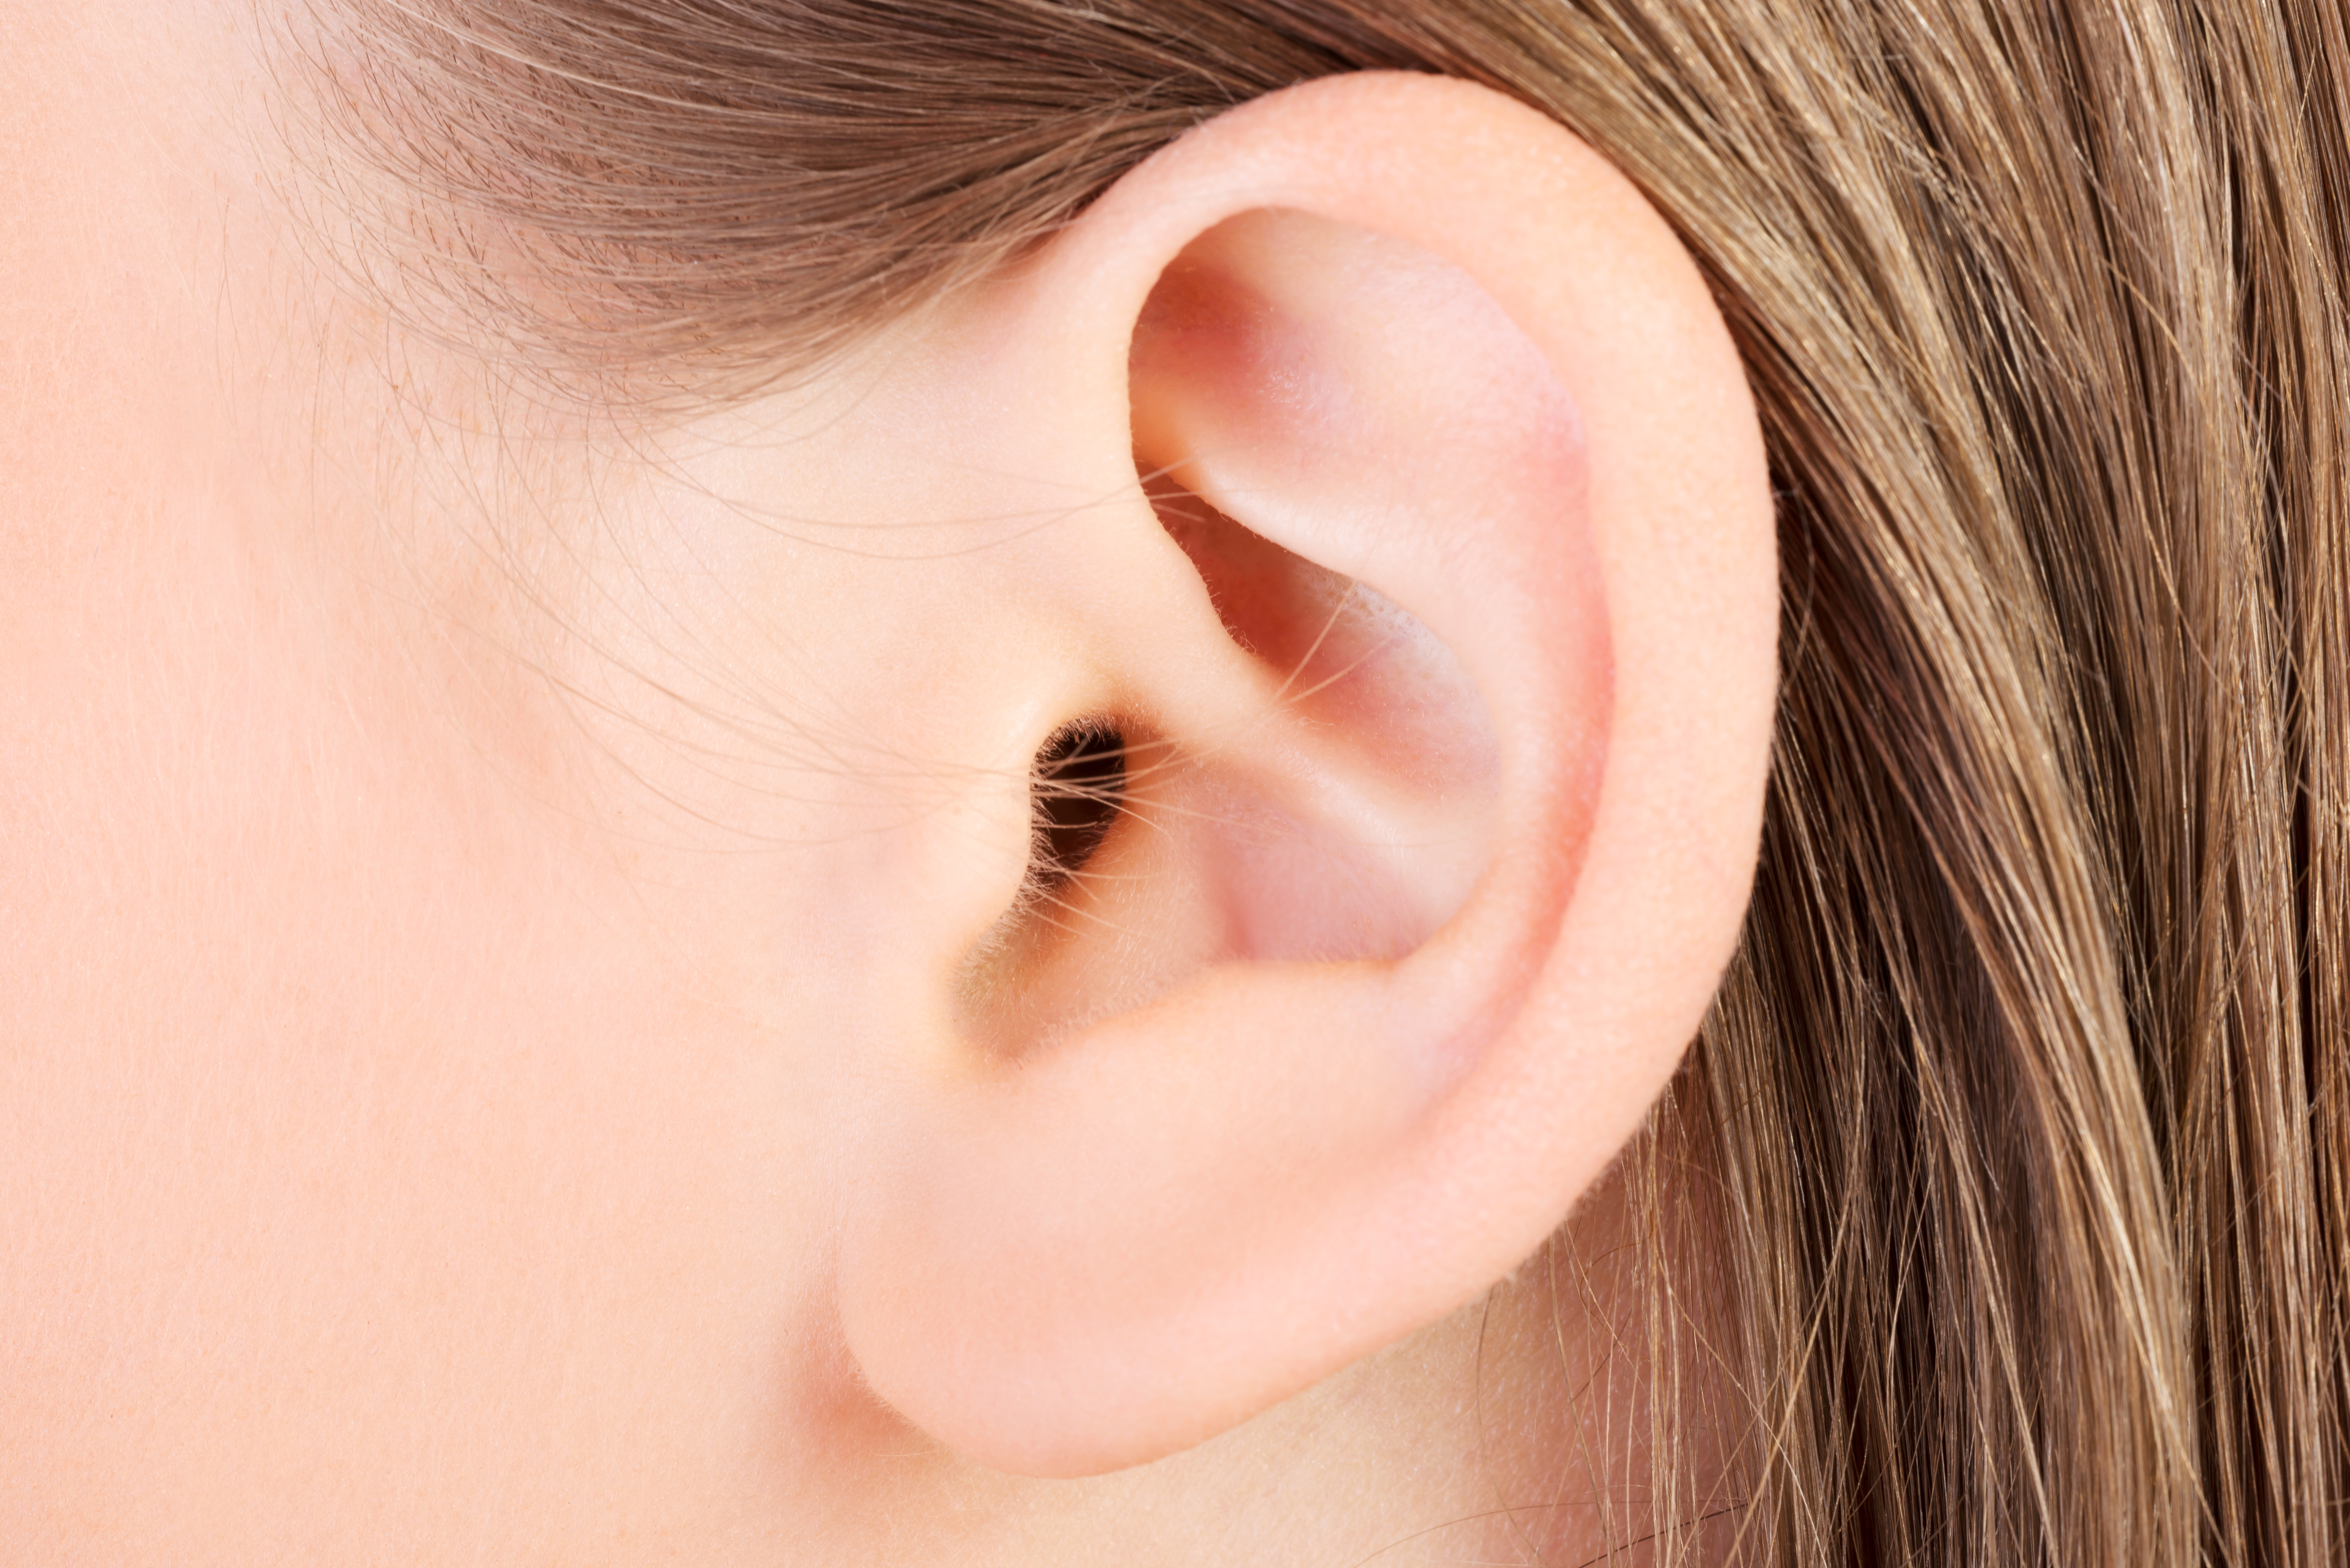 Homeopathic Remedies for a Ruptured Eardrum | LEAFtv